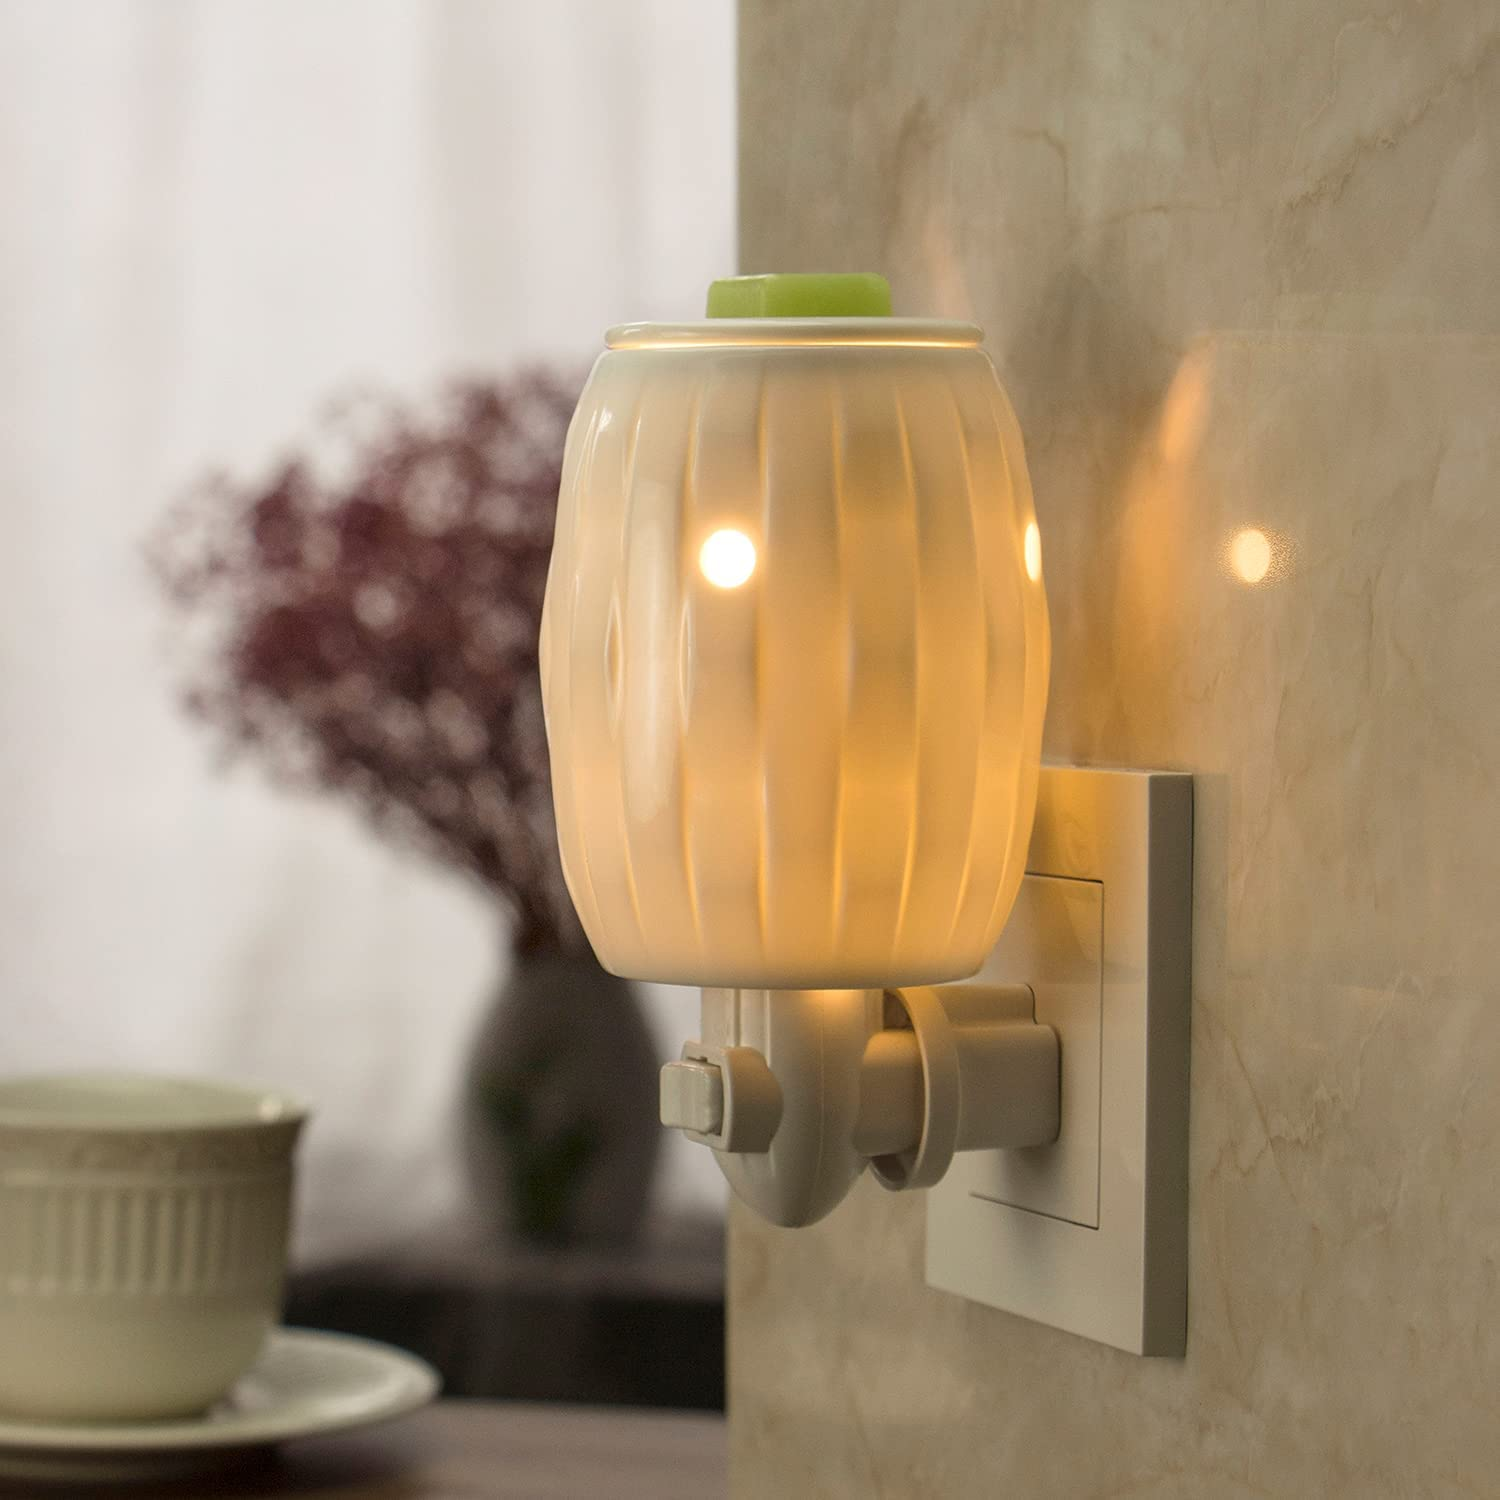 Wax Warmers Plug In Melt Heater Home Decor with Light 17 Fragrance Scented Oil